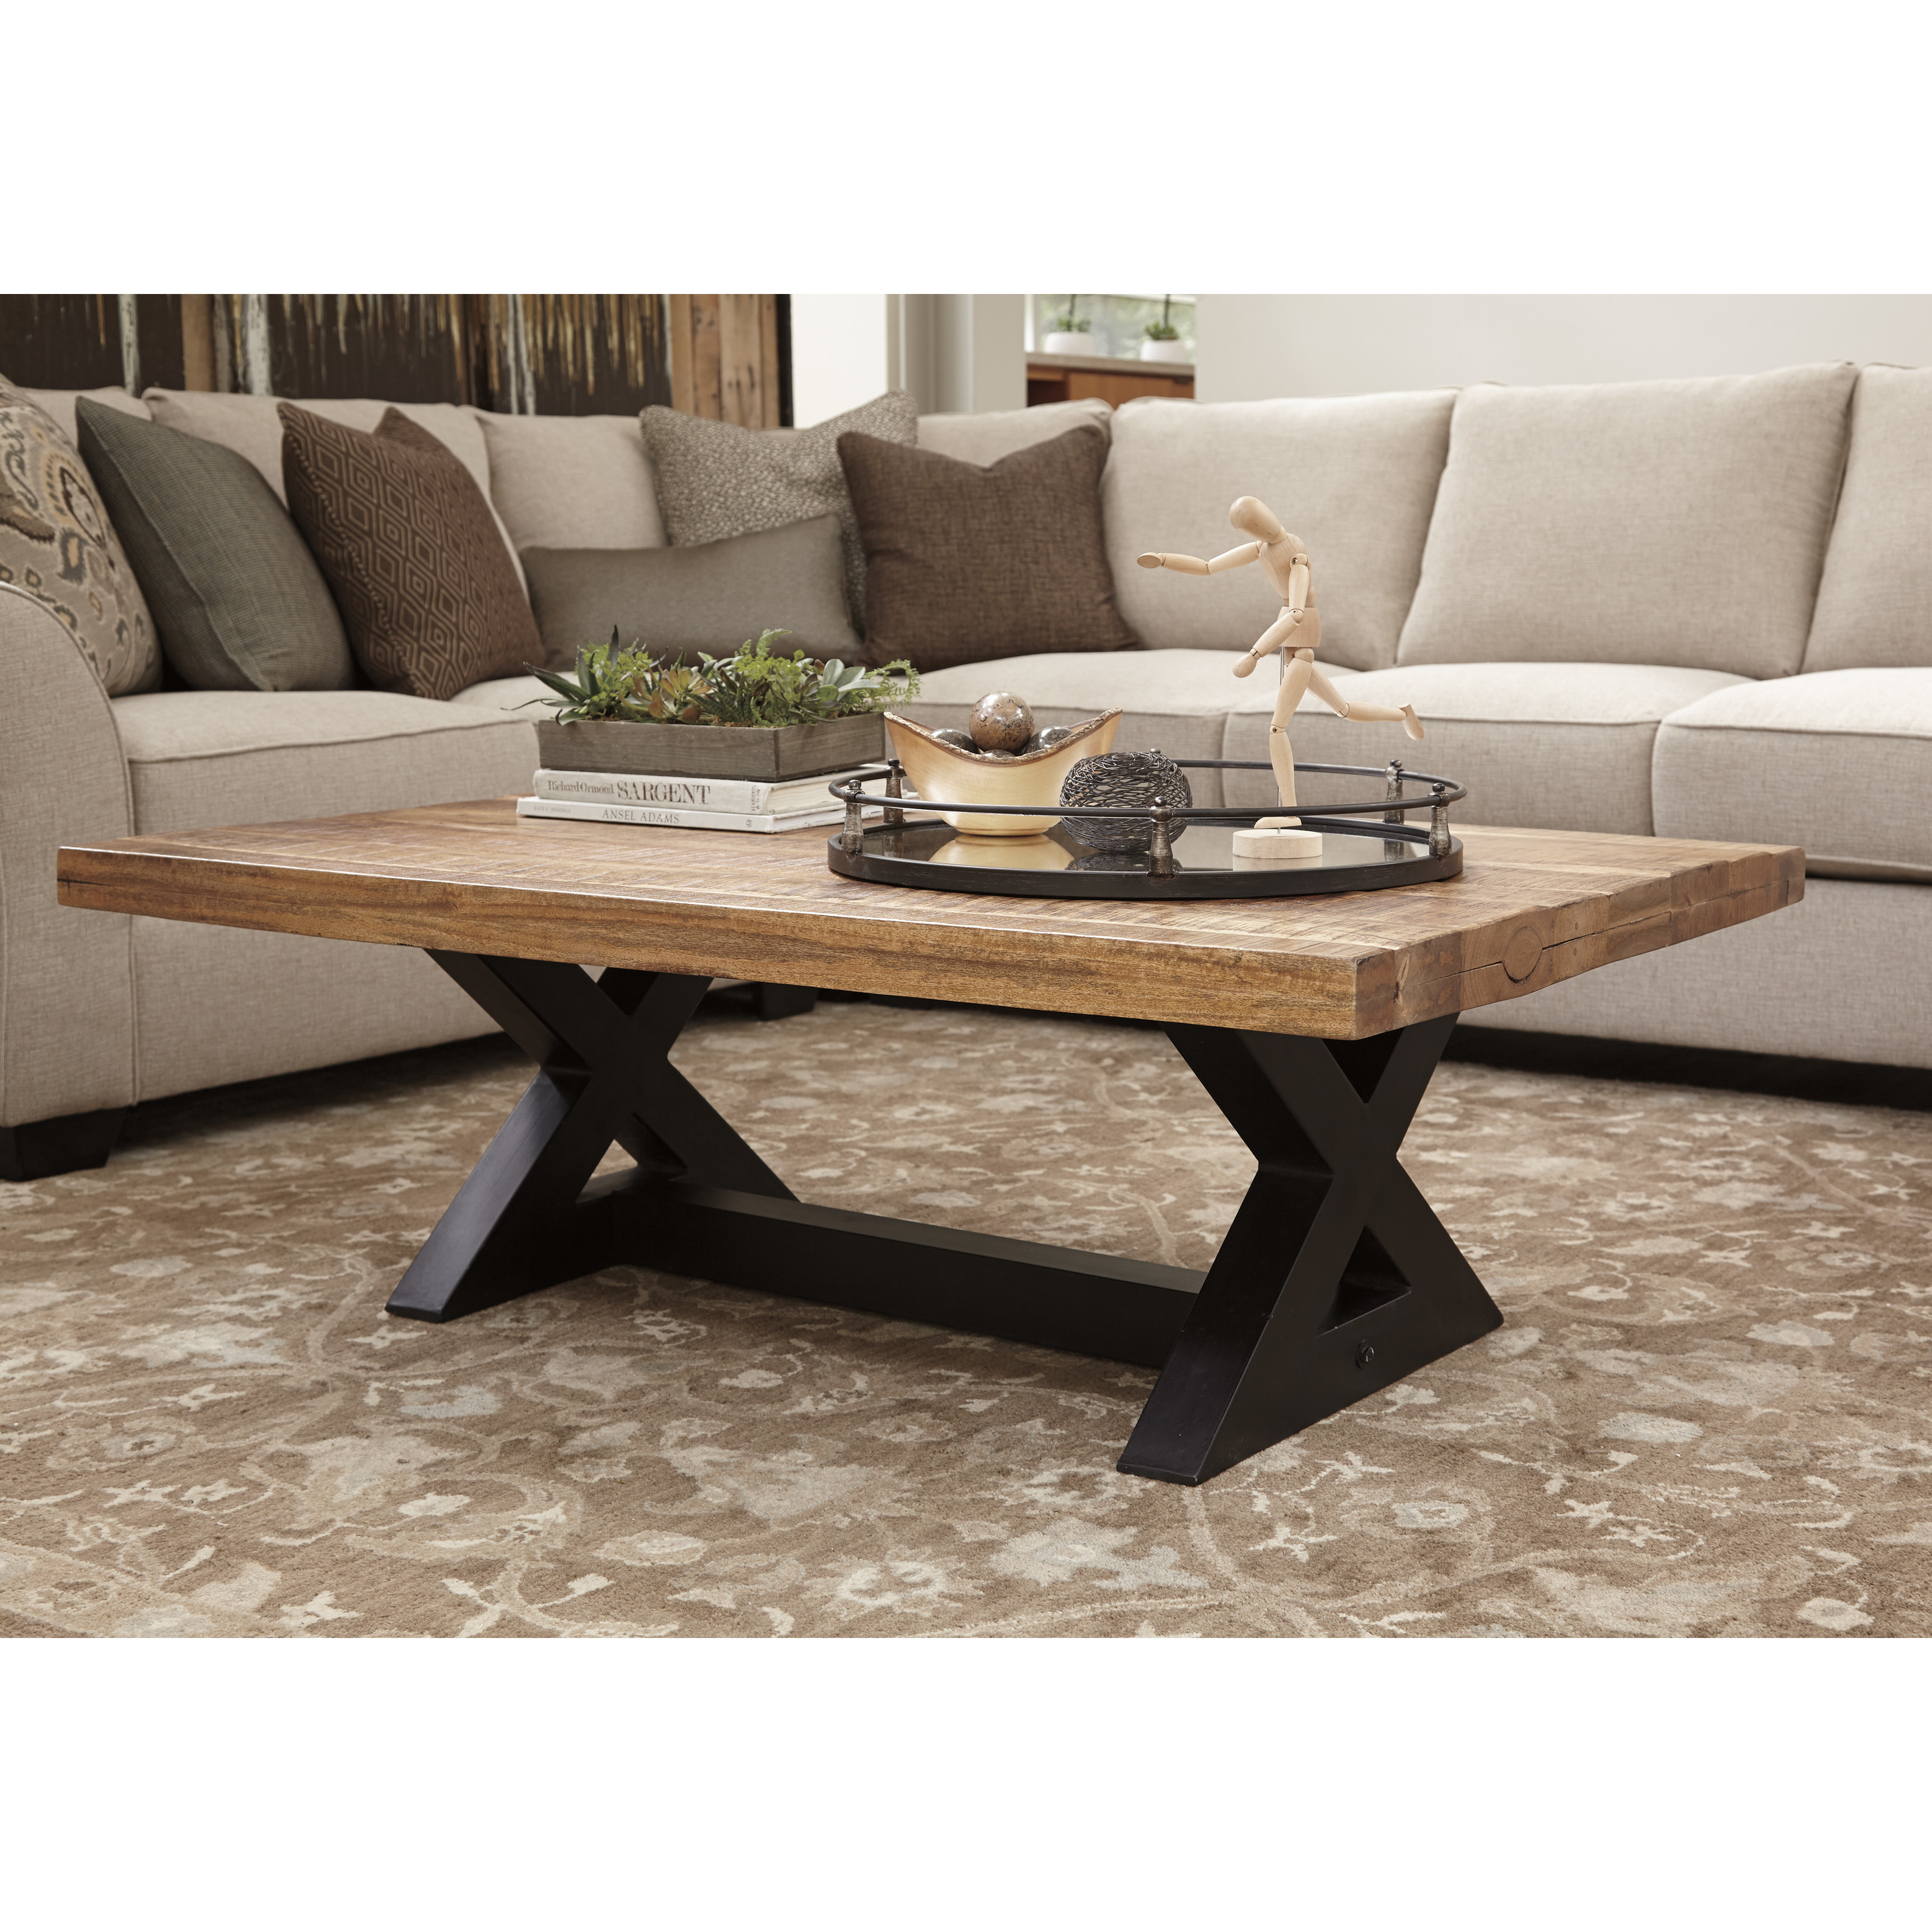 Best ideas about Ashley Coffee Table . Save or Pin Signature Design by Ashley Wesling Coffee Table & Reviews Now.